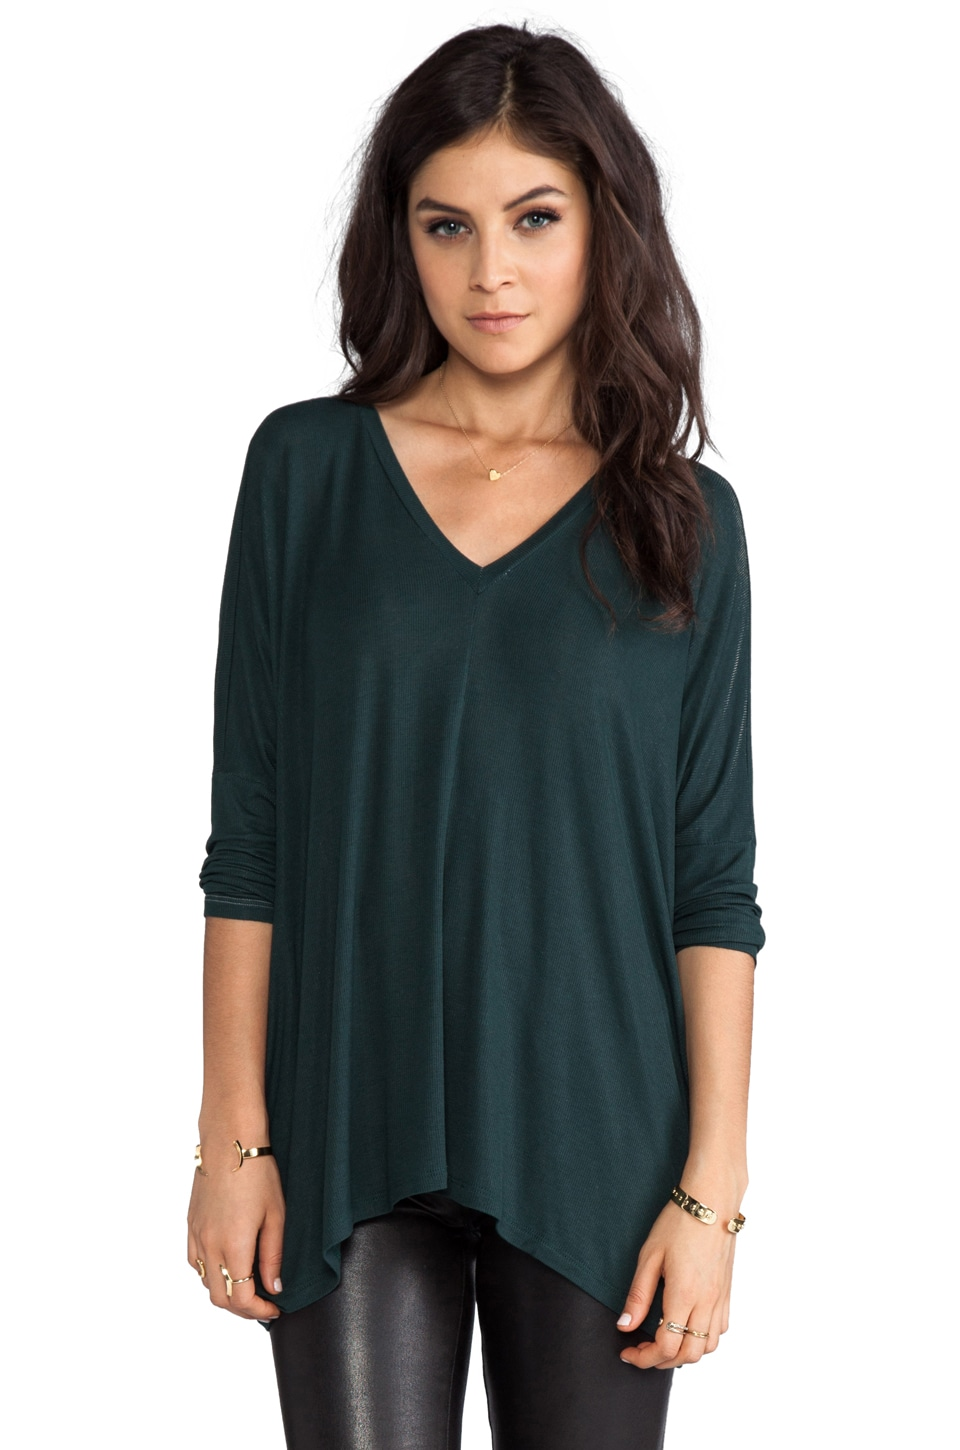 dolan 3/4 Sleeve Oversize Square Tee in Emerald